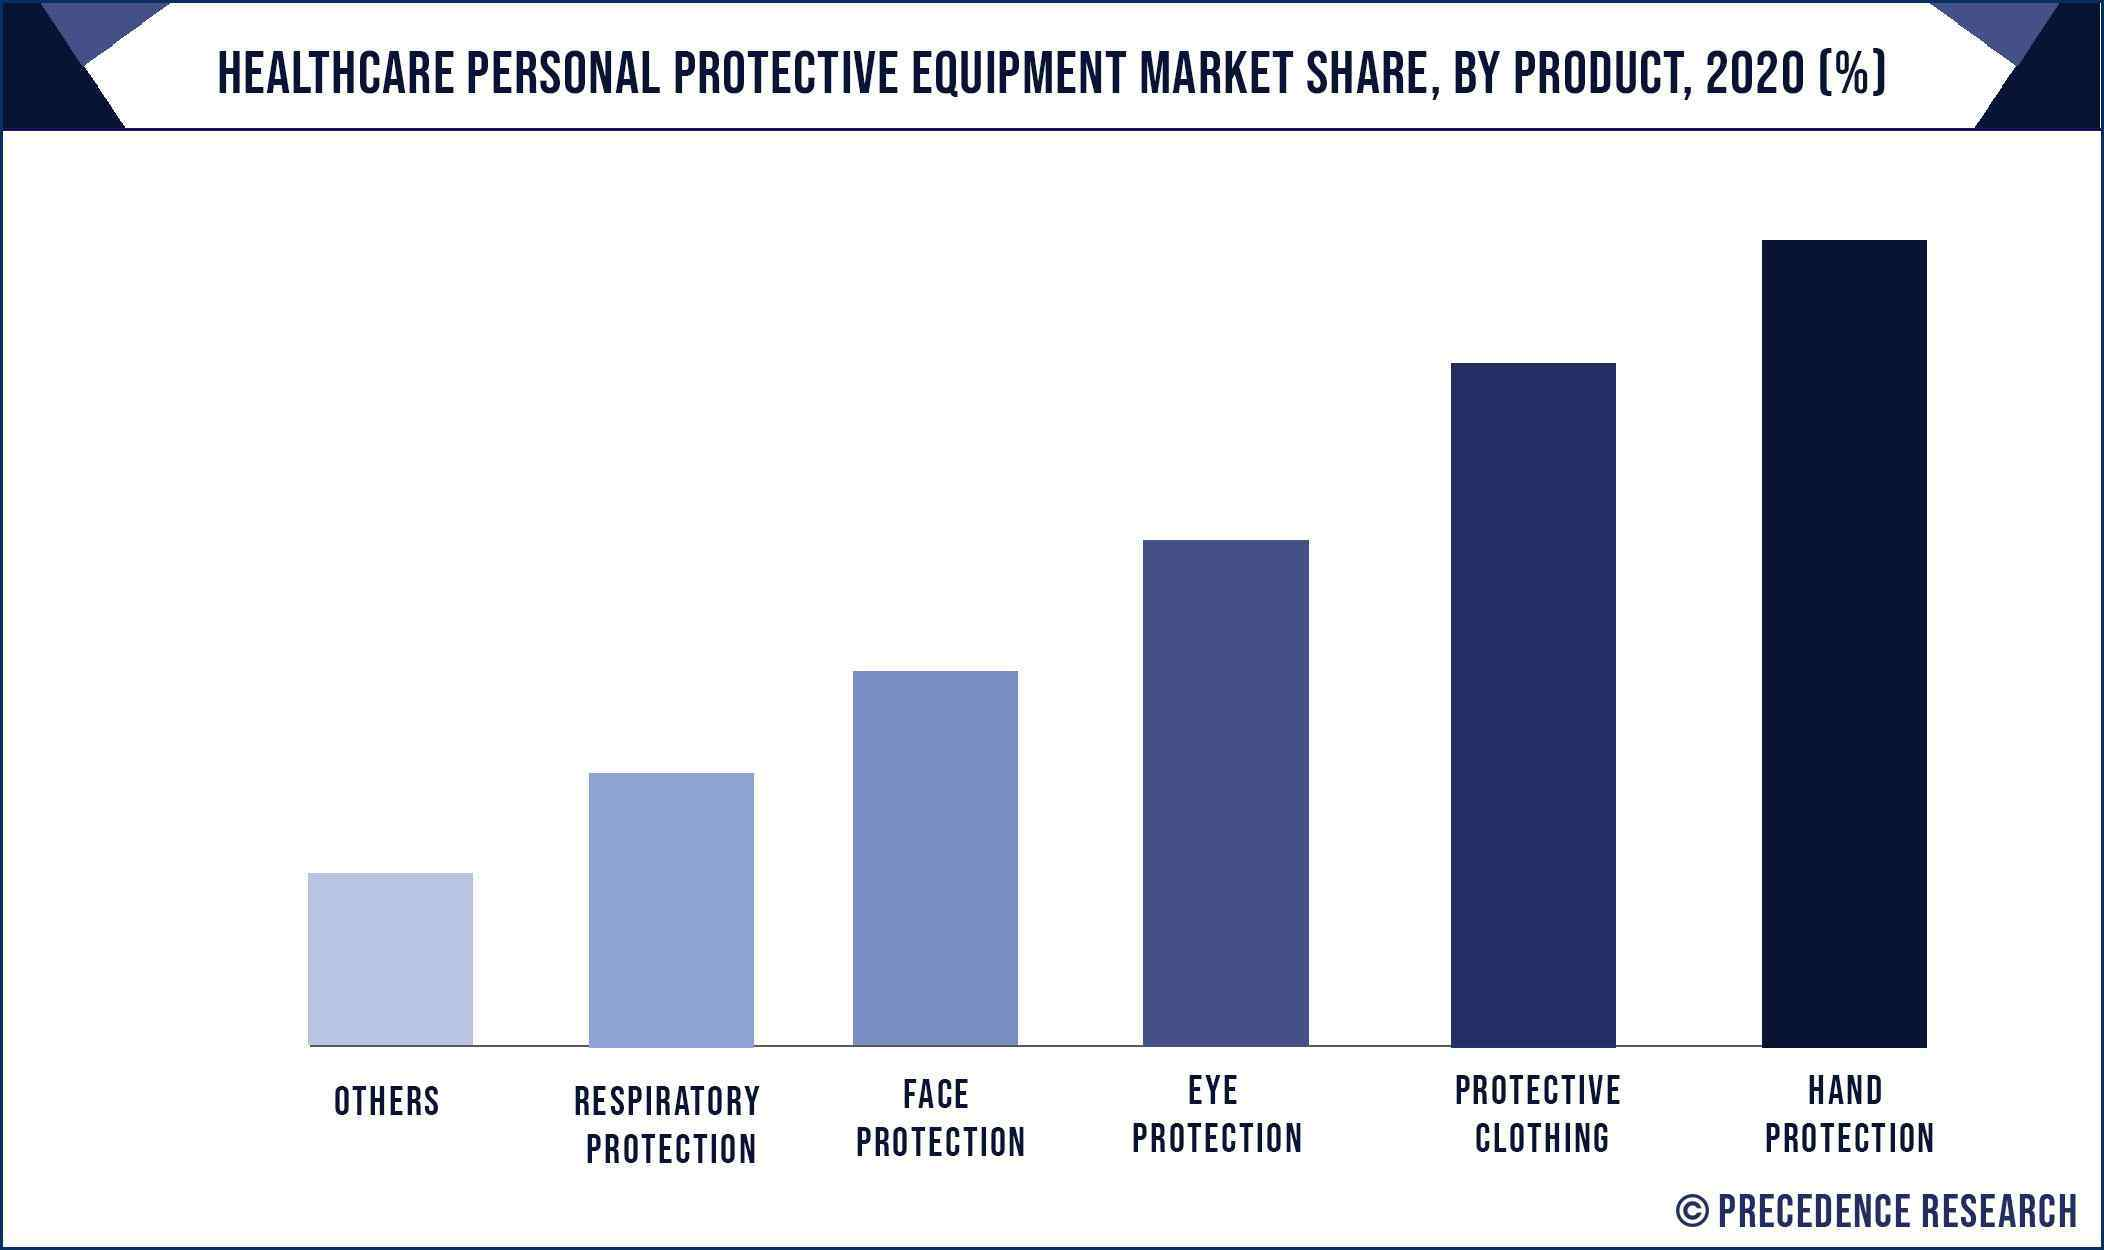 Healthcare Personal Protective Equipment Market Share, By Product, 2020 (%)